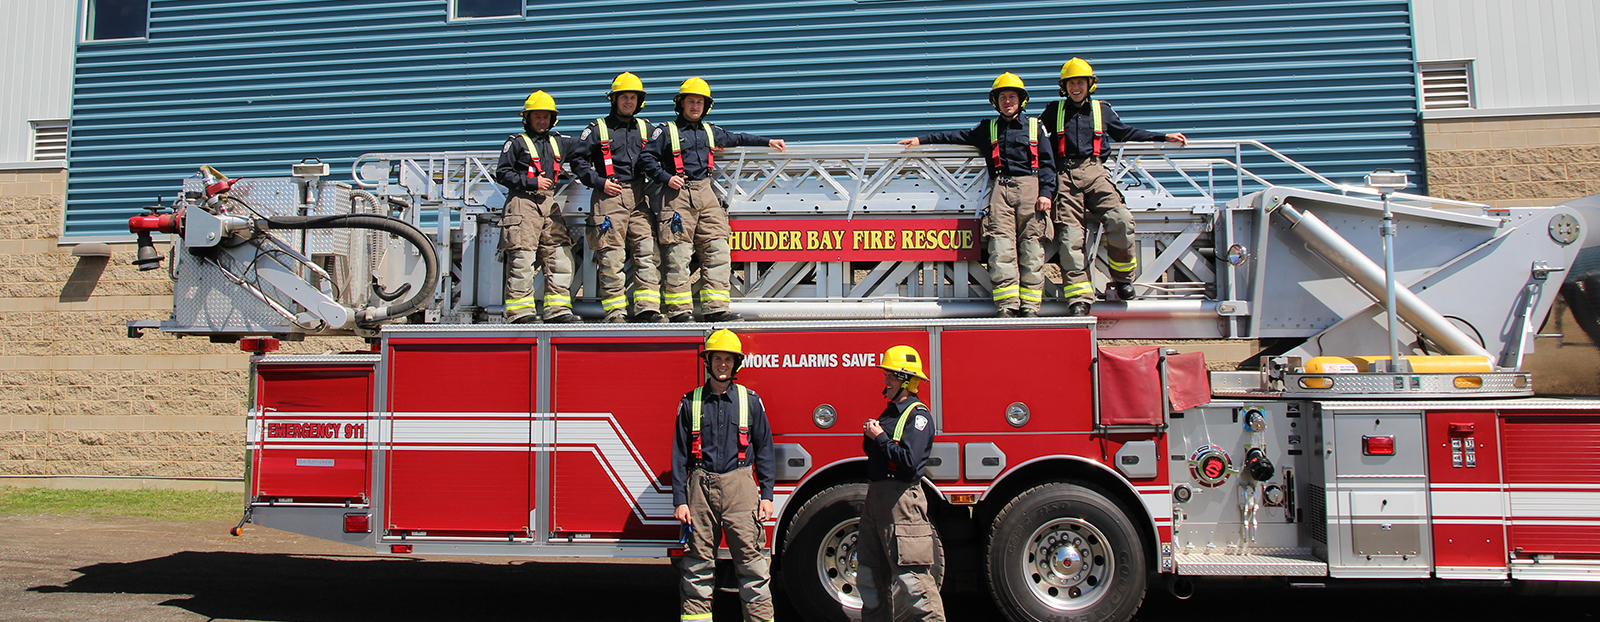 About Tbay Fire Rescue